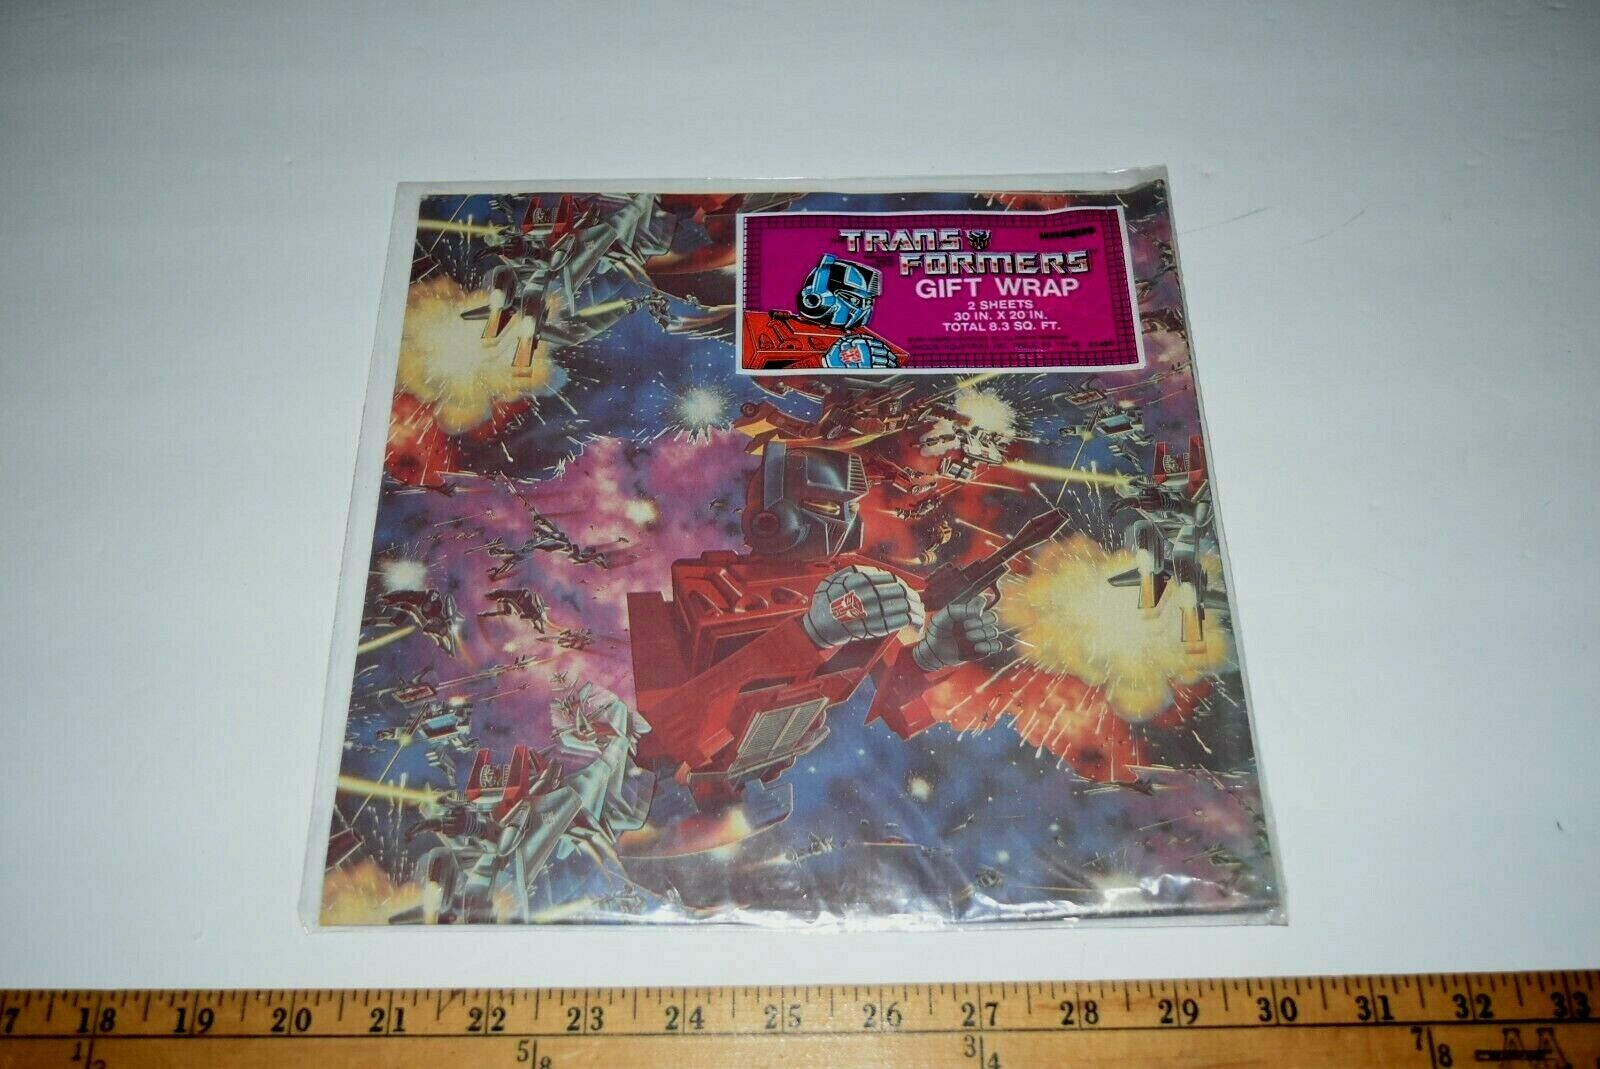 1984 Transformers Optimus Prime Gift wrap sealed